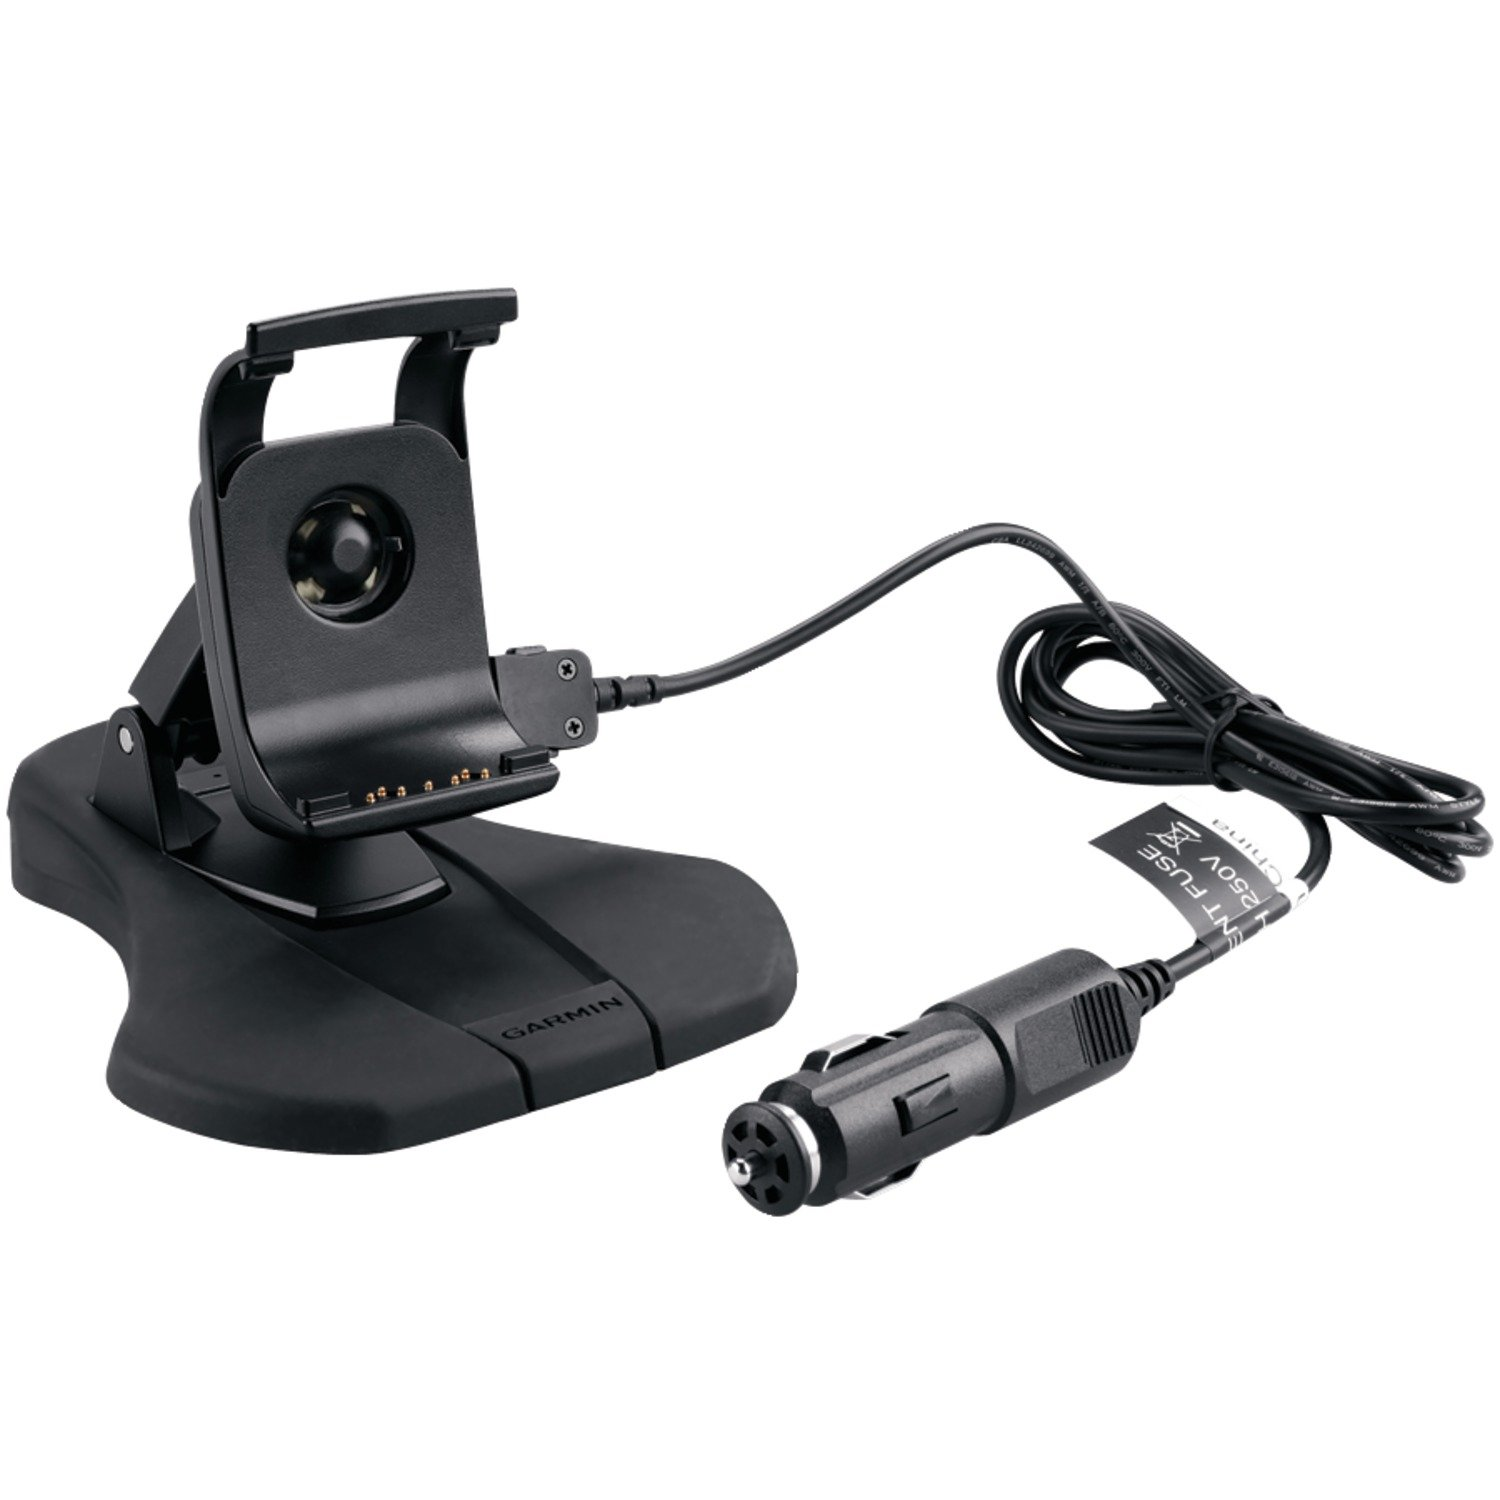 Garmin Auto Friction Mount Kit with Speaker by Garmin